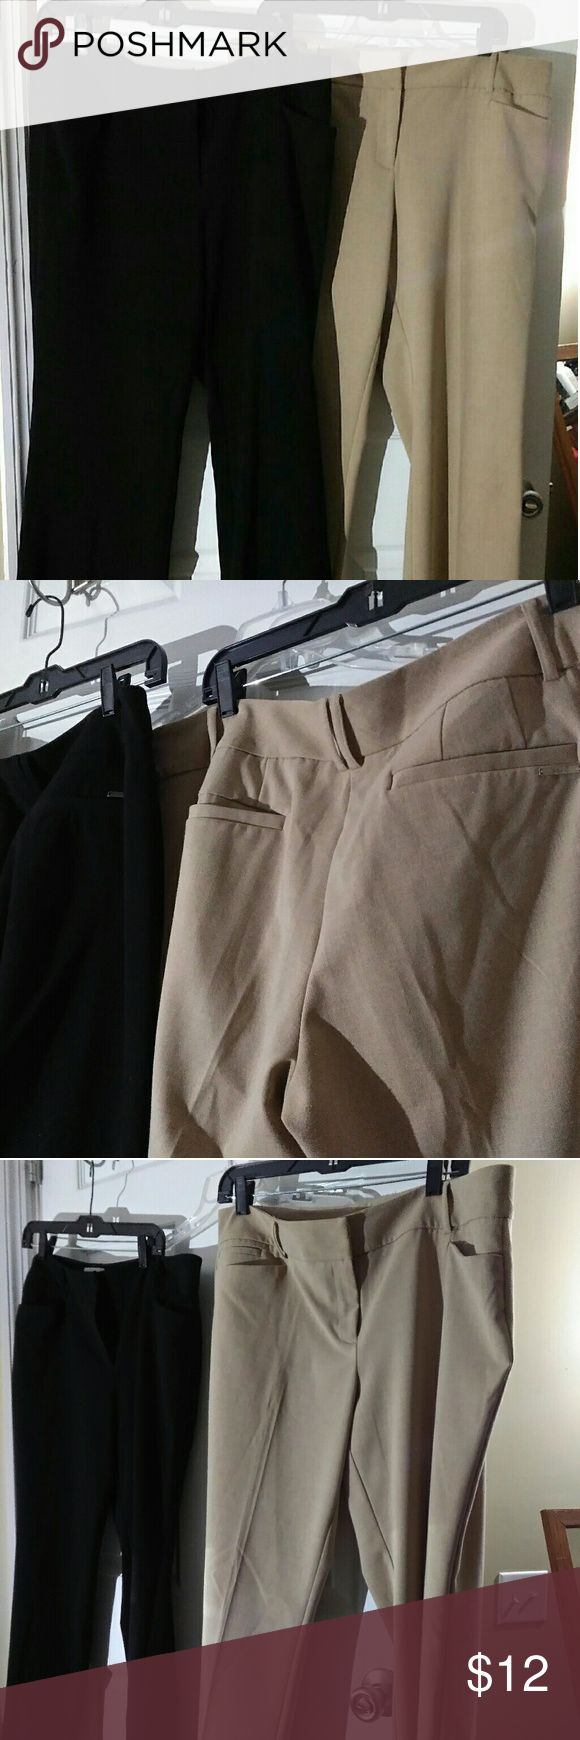 Nice NY & Co. Size 16 Petite work pants! I have several of these so I'm basically selling them all for cheap! I have at least 8 more pair of Size 16 Petite and some 14 Petite and maybe some 12s. I love all NY&CO. dress pants for work.  They are so comfy and flattering! These two pair are Poly/Rayon/Spandex.  The tan pair feels a bit lighter and is 72% Poly, 23% Rayon & 5% Spandex. The black pair is 64% Poly, 32% Rayon & 4% Spandex.  Great shape, very unnoticable when wearing slight piling in…